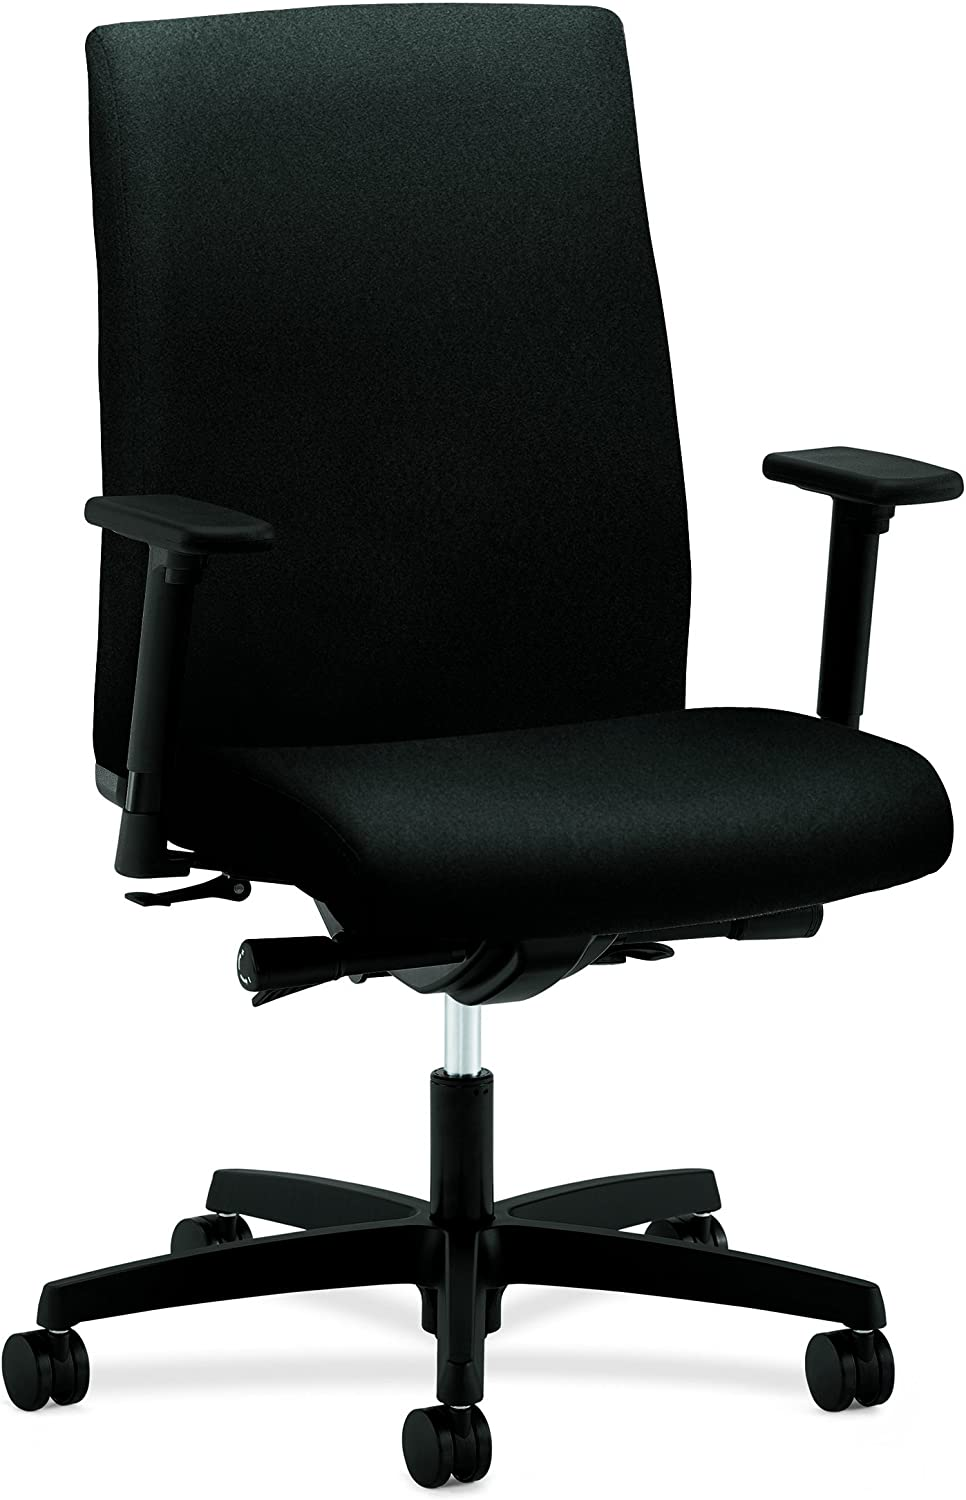 HON Ignition Series Mid-Back Work Chair – Upholstered Computer Chair for Office Desk, Black HIWM3